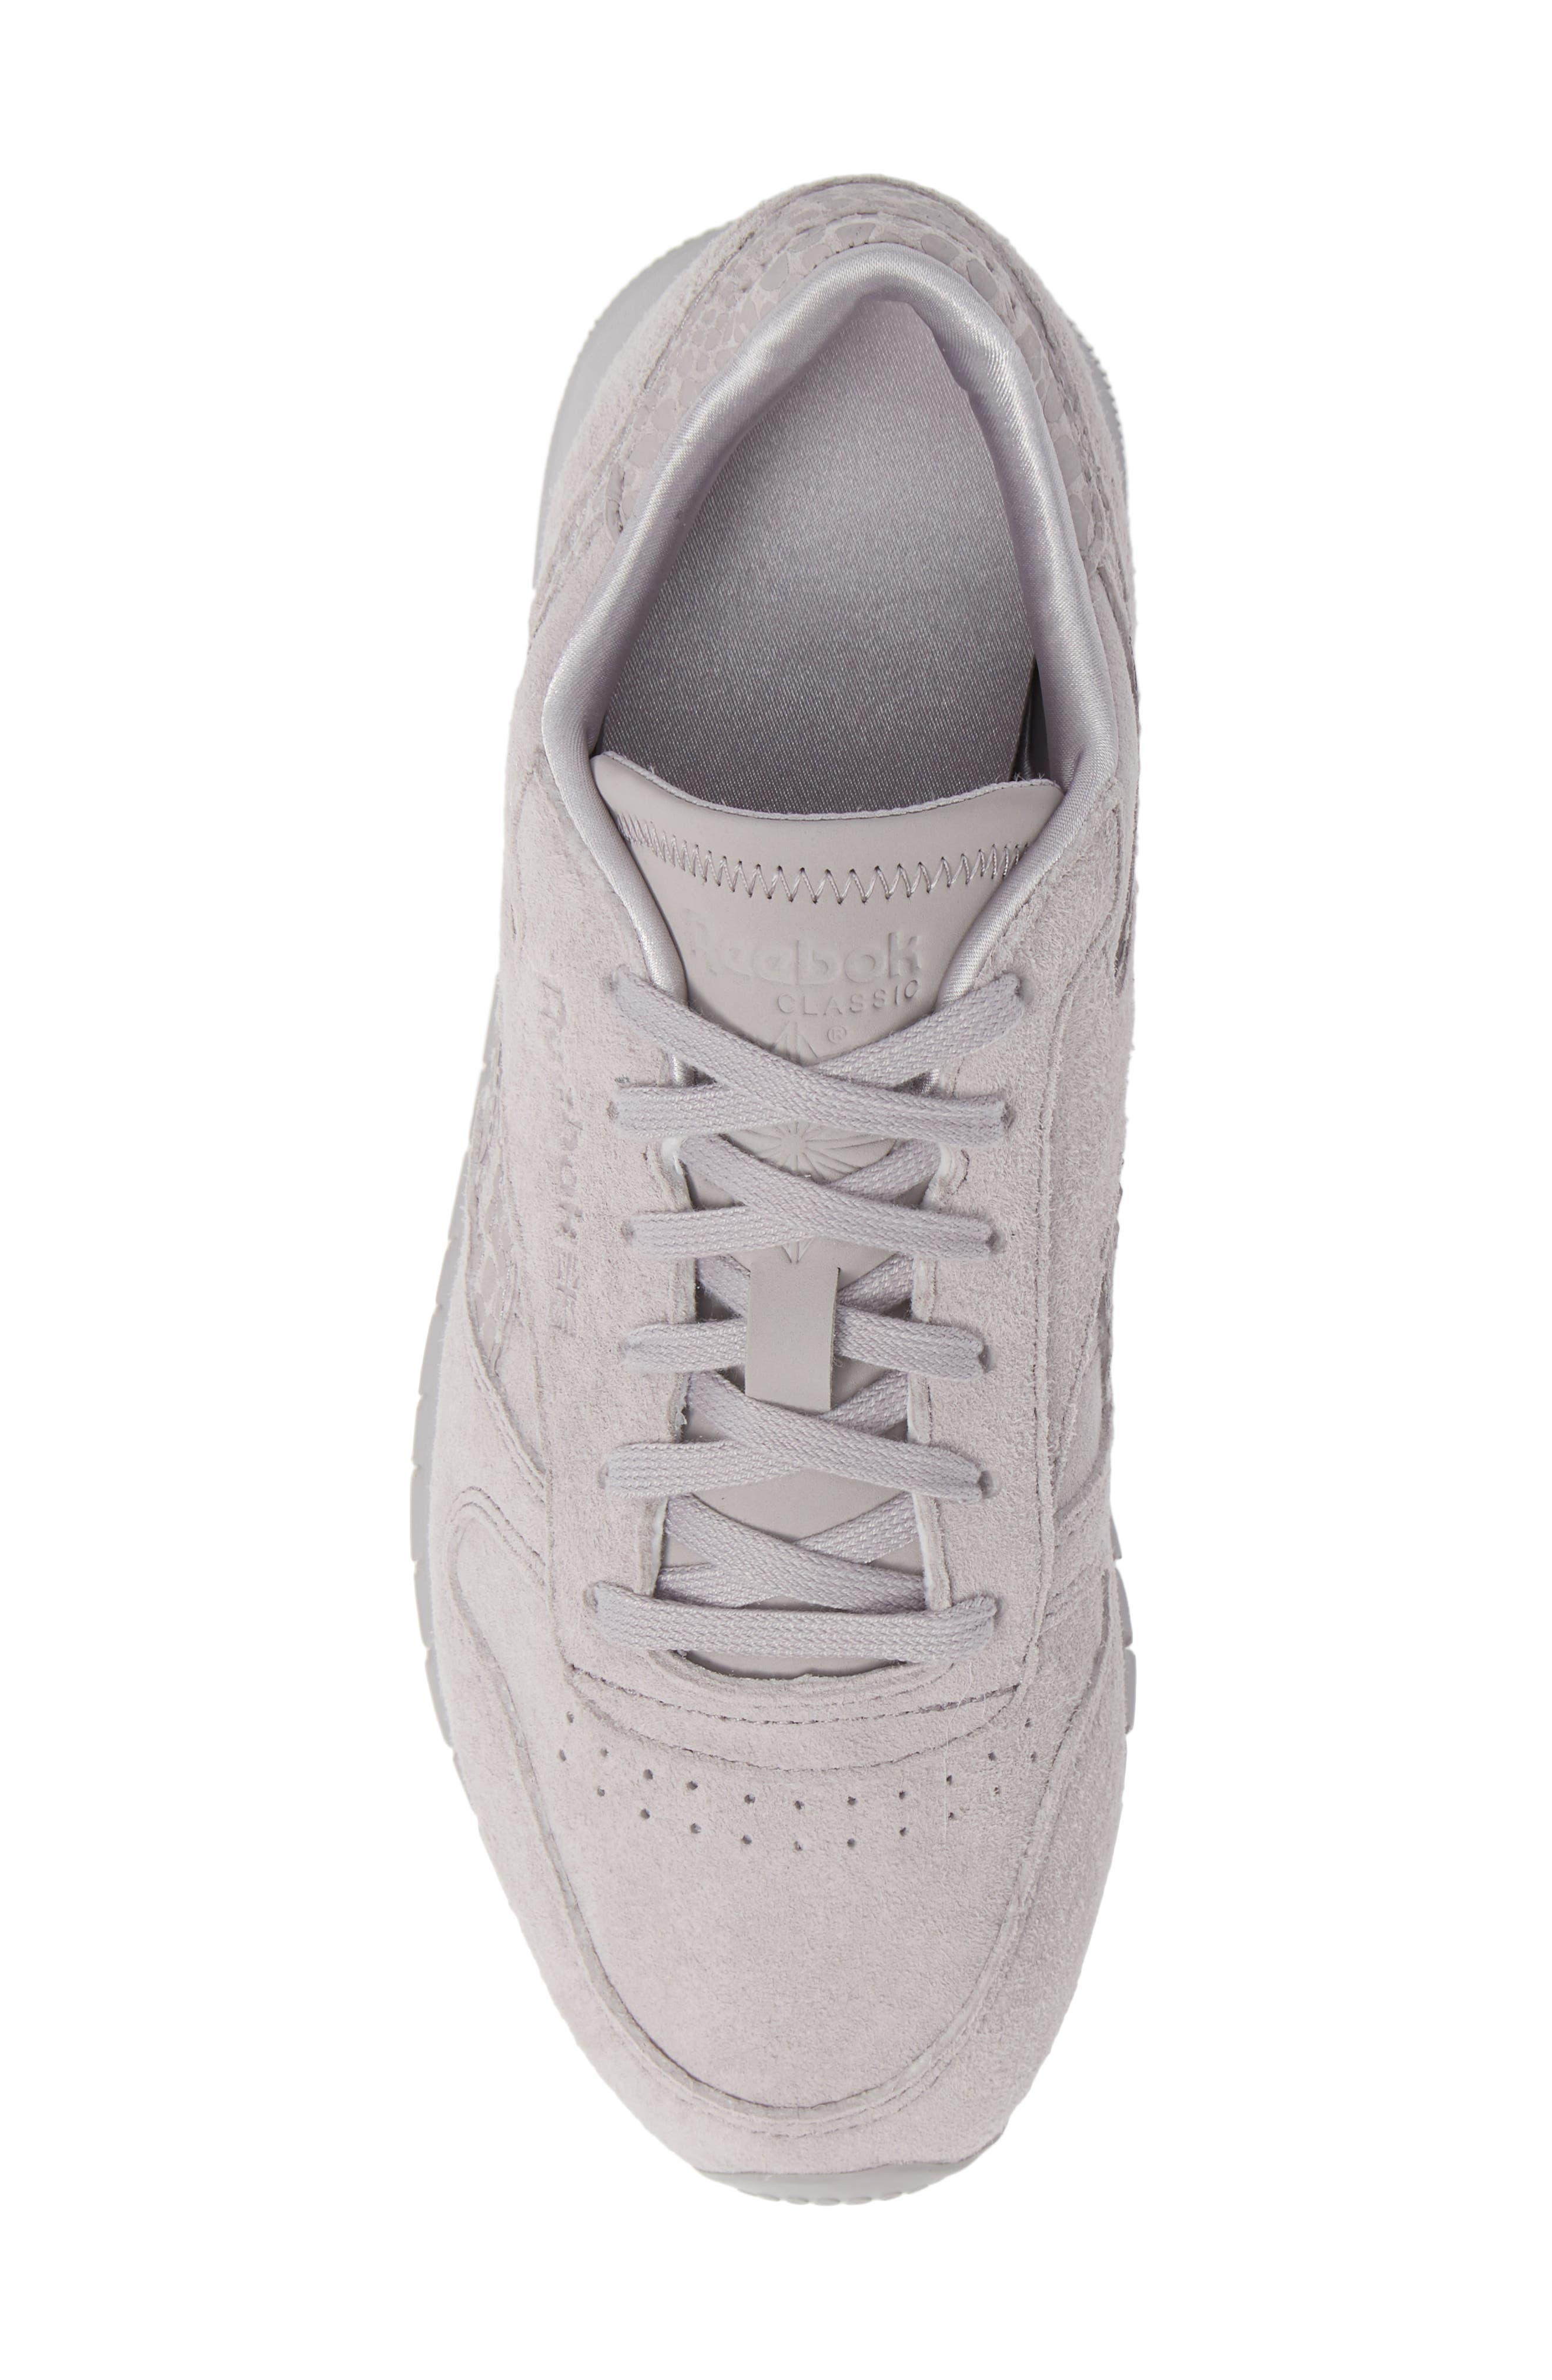 Classic Leather Sneaker,                             Alternate thumbnail 5, color,                             WHISPER GREY